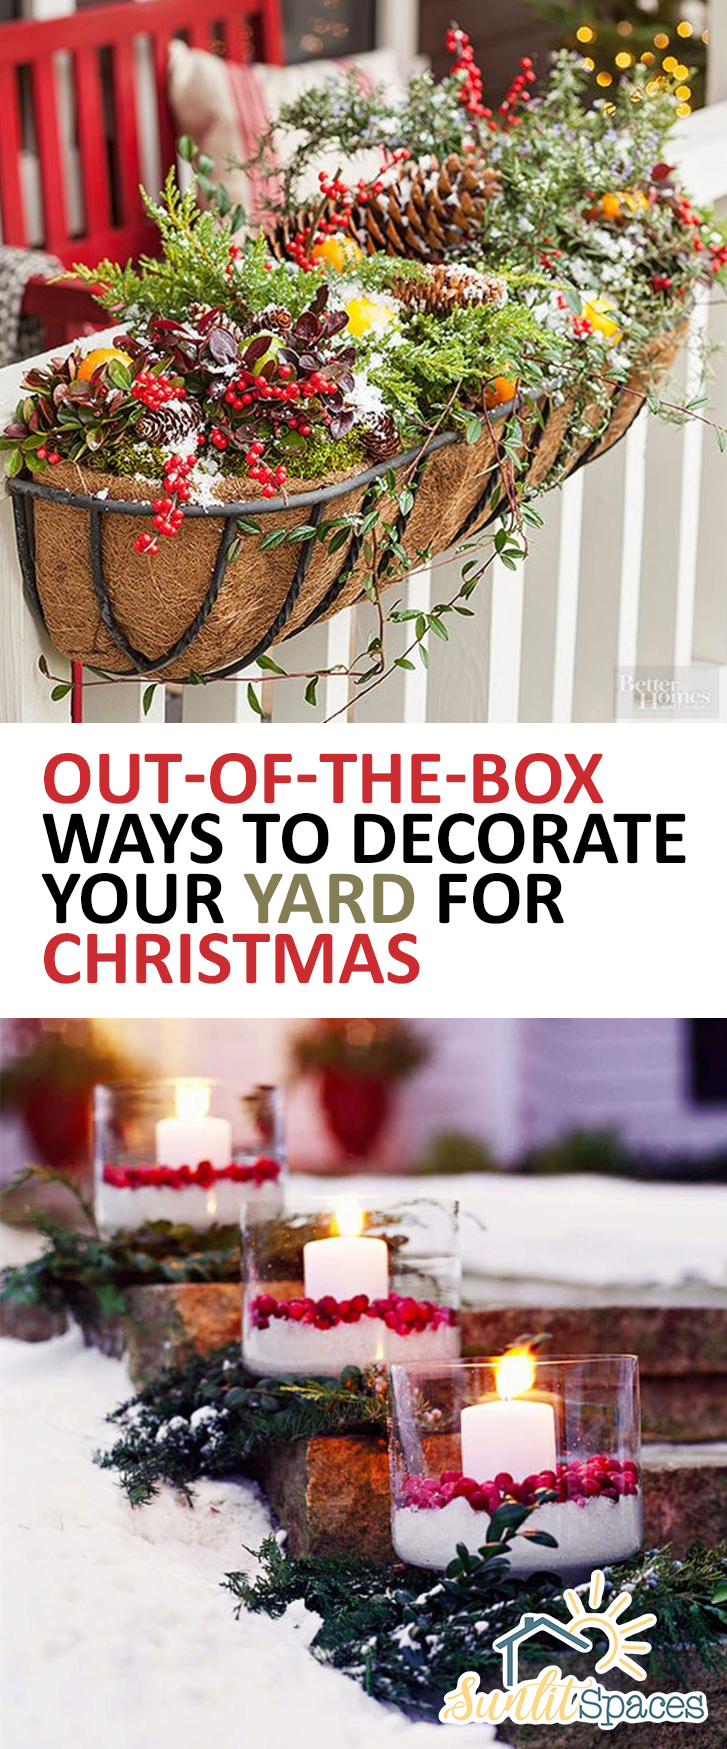 Out Of The Box Ways To Decorate Your Yard For Christmas Home Decorators Catalog Best Ideas of Home Decor and Design [homedecoratorscatalog.us]